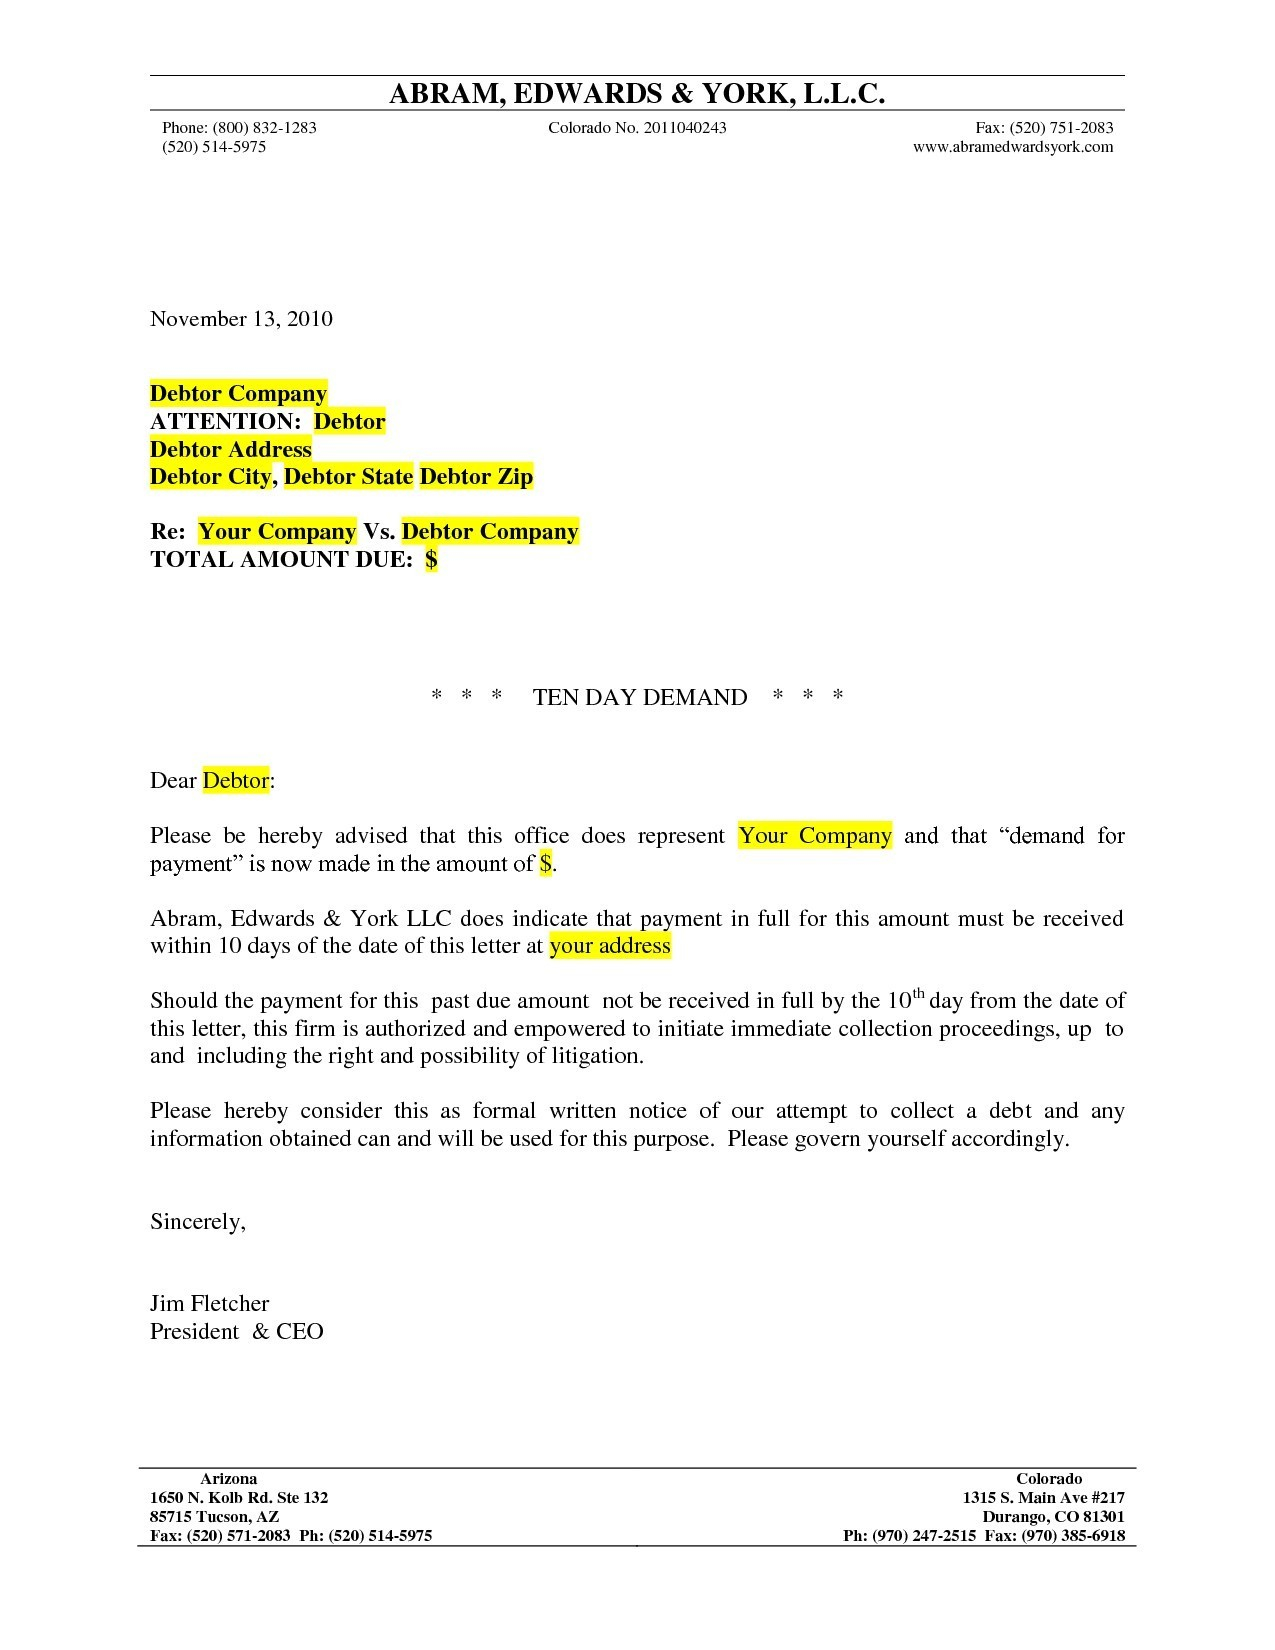 Lien Demand Letter Template - formal Letter format Legal Best Lawyer Demand Letter Sample formal